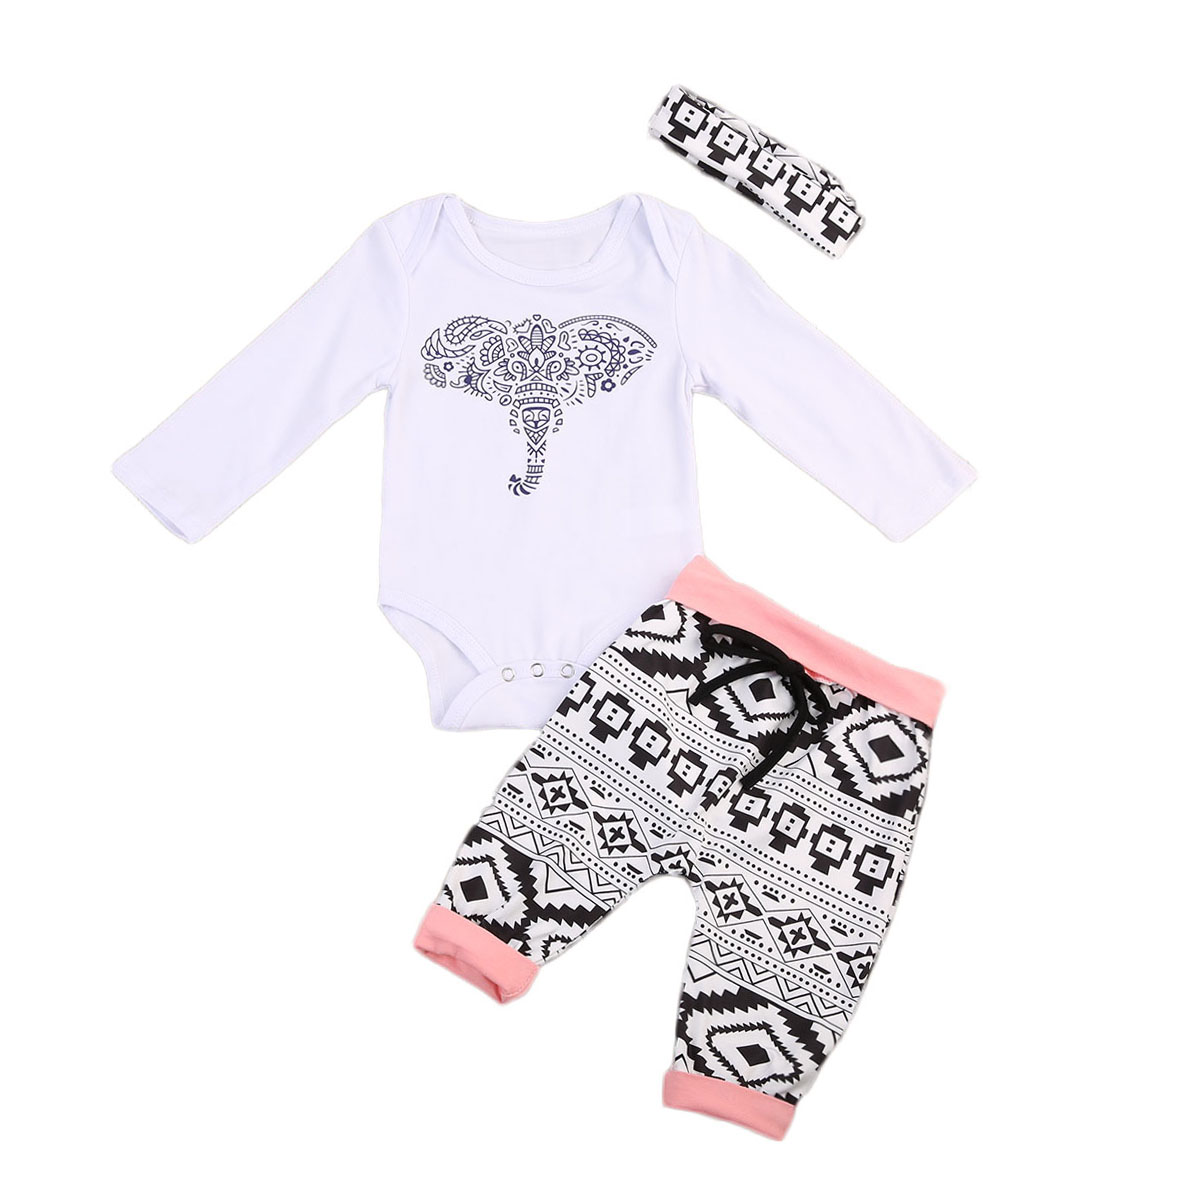 Autumn Newborn Baby Boy Girl Clothes Set Long Sleeve Romper Elephant Tops+Legging Pants Handband 3pcs Infant Clothing Outfits infant baby boy girl 2pcs clothes set kids short sleeve you serious clark letters romper tops car print pants 2pcs outfit set